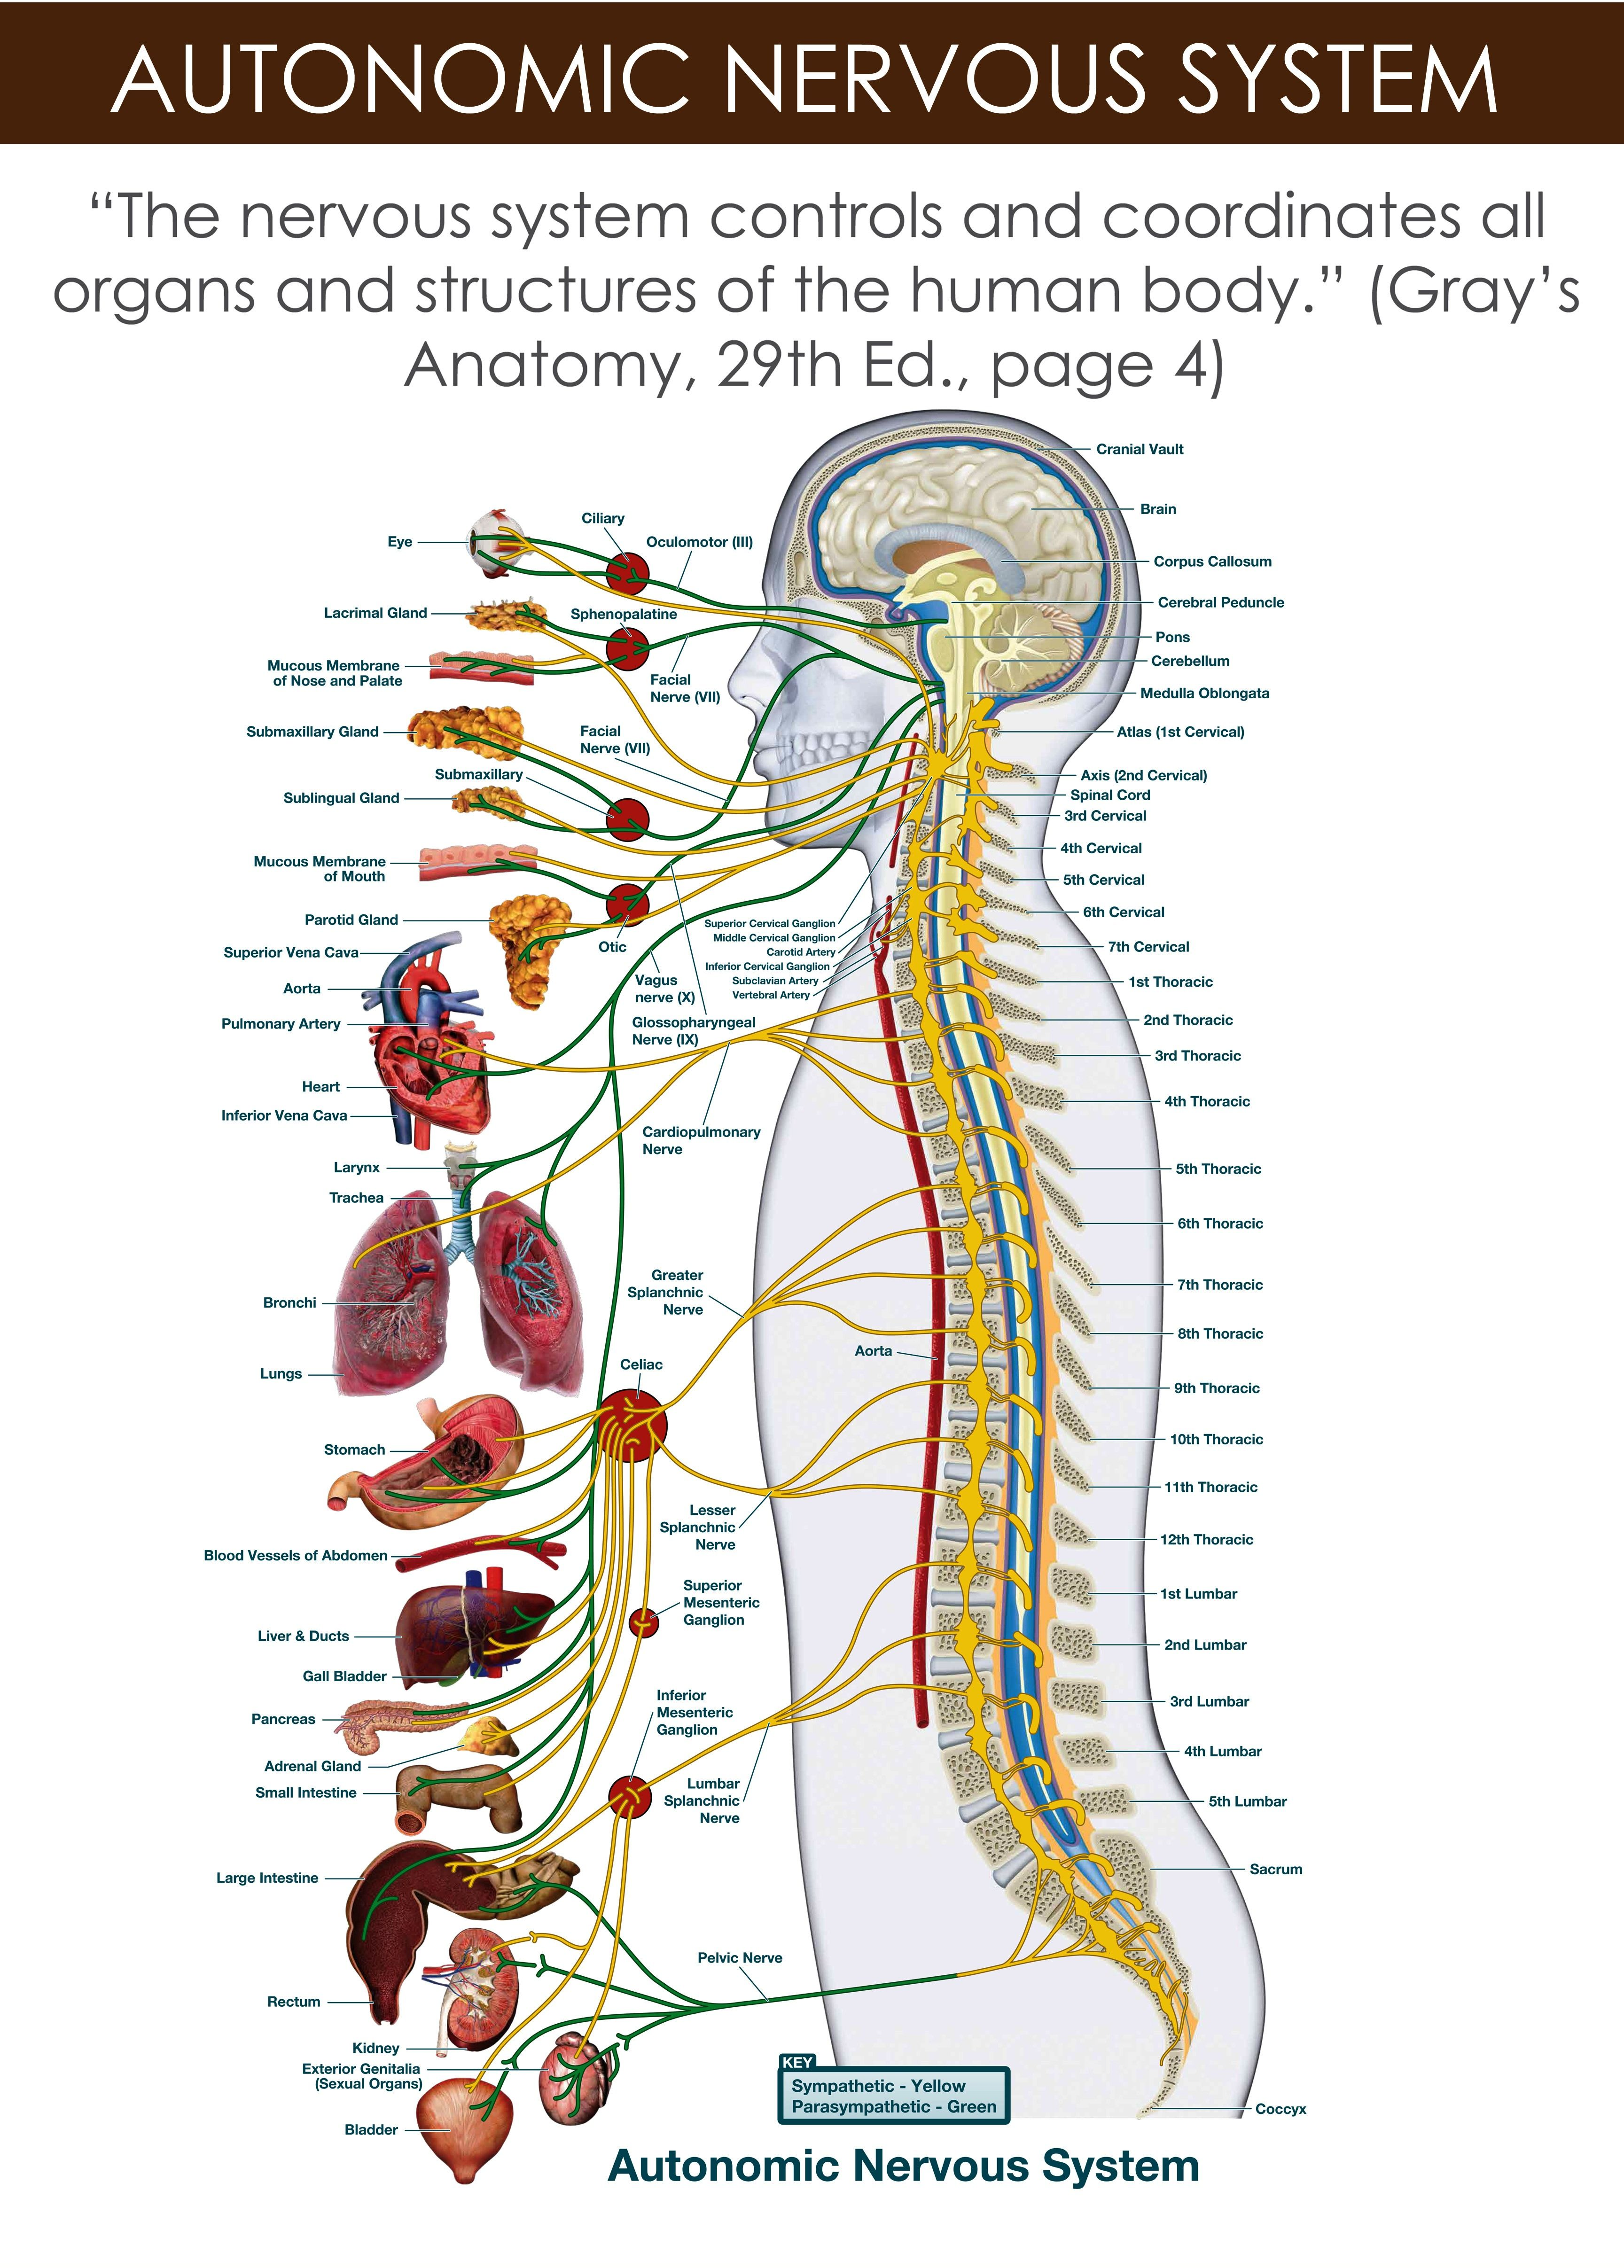 The autonomic nervous system is the part of the nervous system that the autonomic nervous system is the part of the nervous system that supplies the internal organs ccuart Gallery